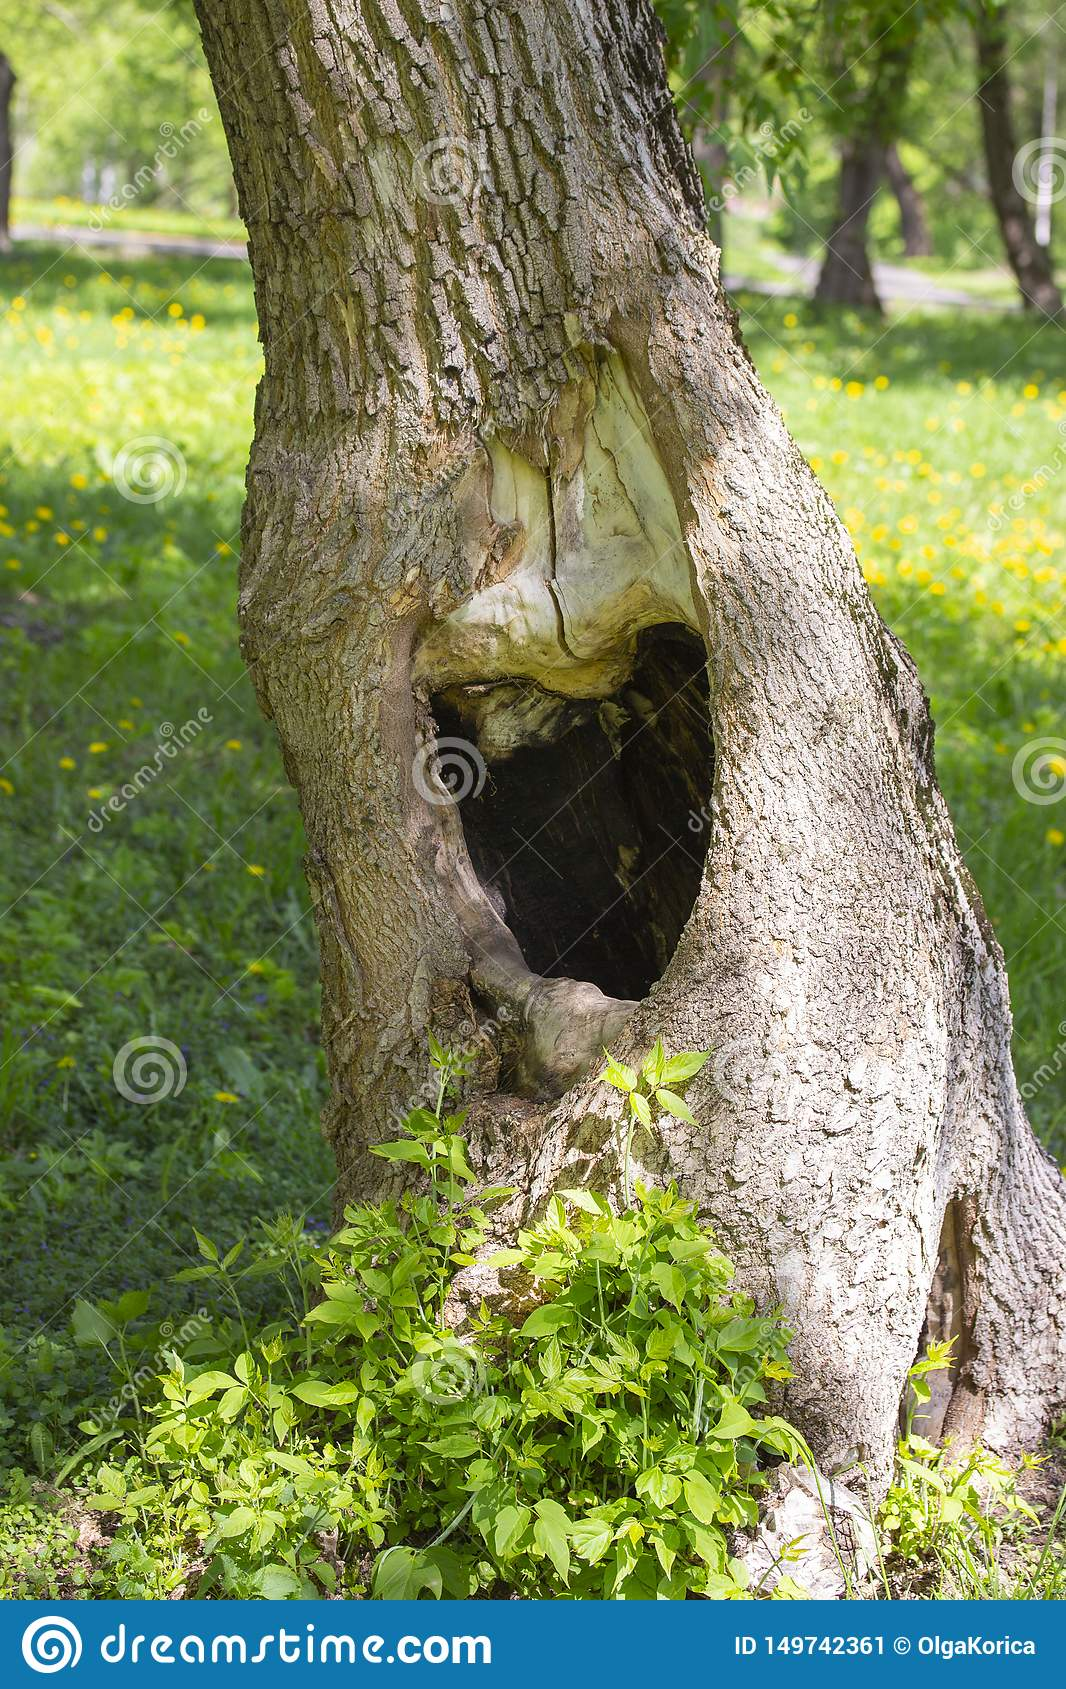 Large black hollow in a tree trunk. Summer green grass on background. Hole in the tree hollow opening manhole niche recess